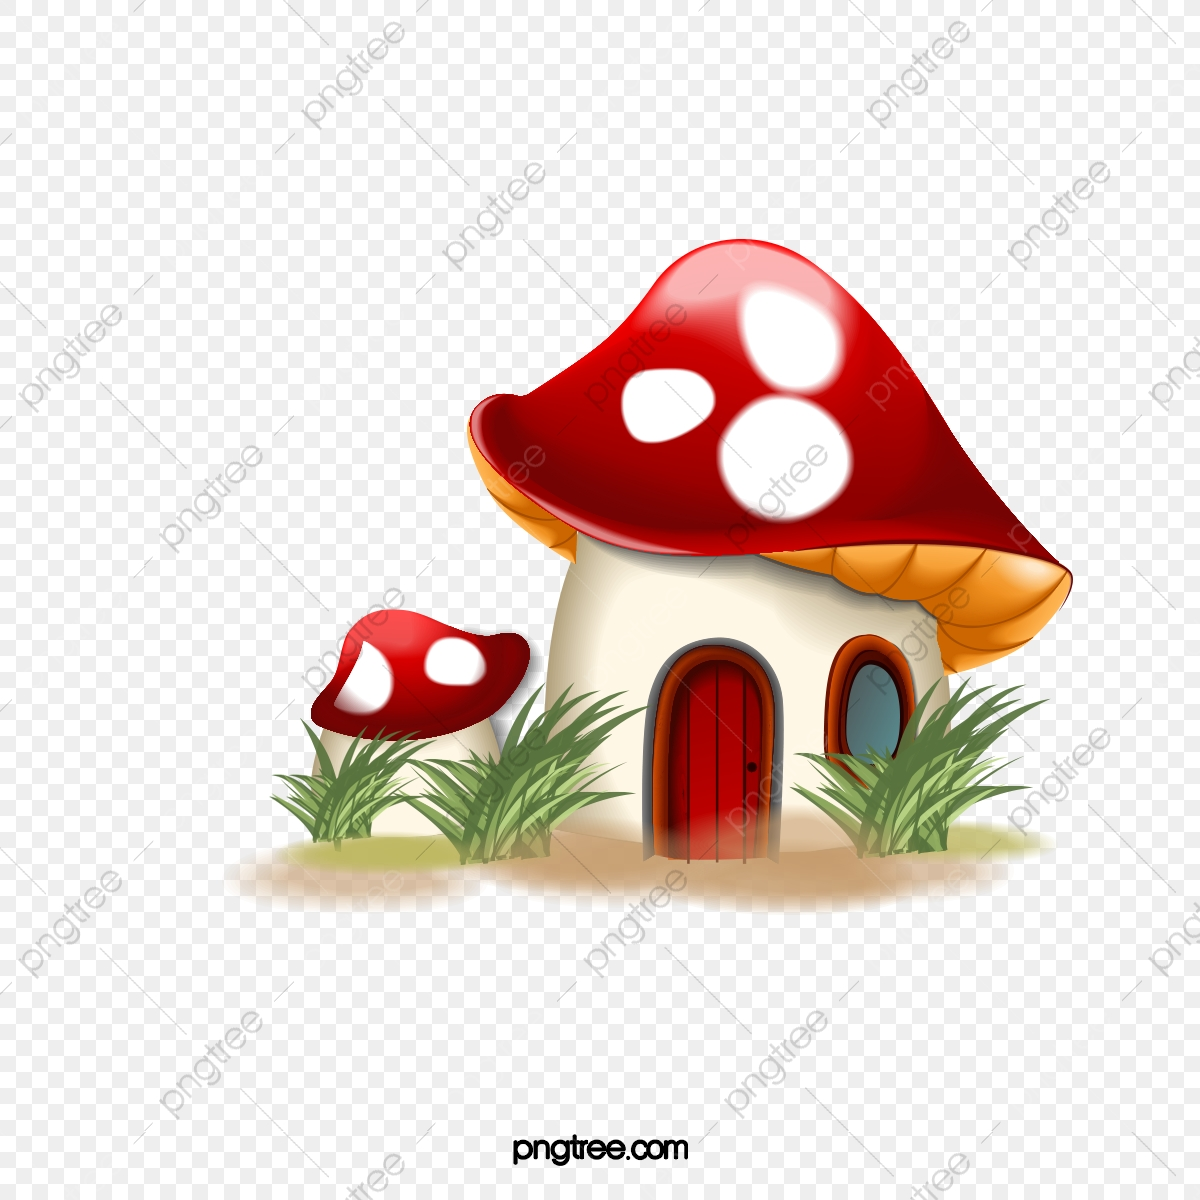 Mushroom Clipart – Watercolor mushrooms clipart painted by hand with watercolor.